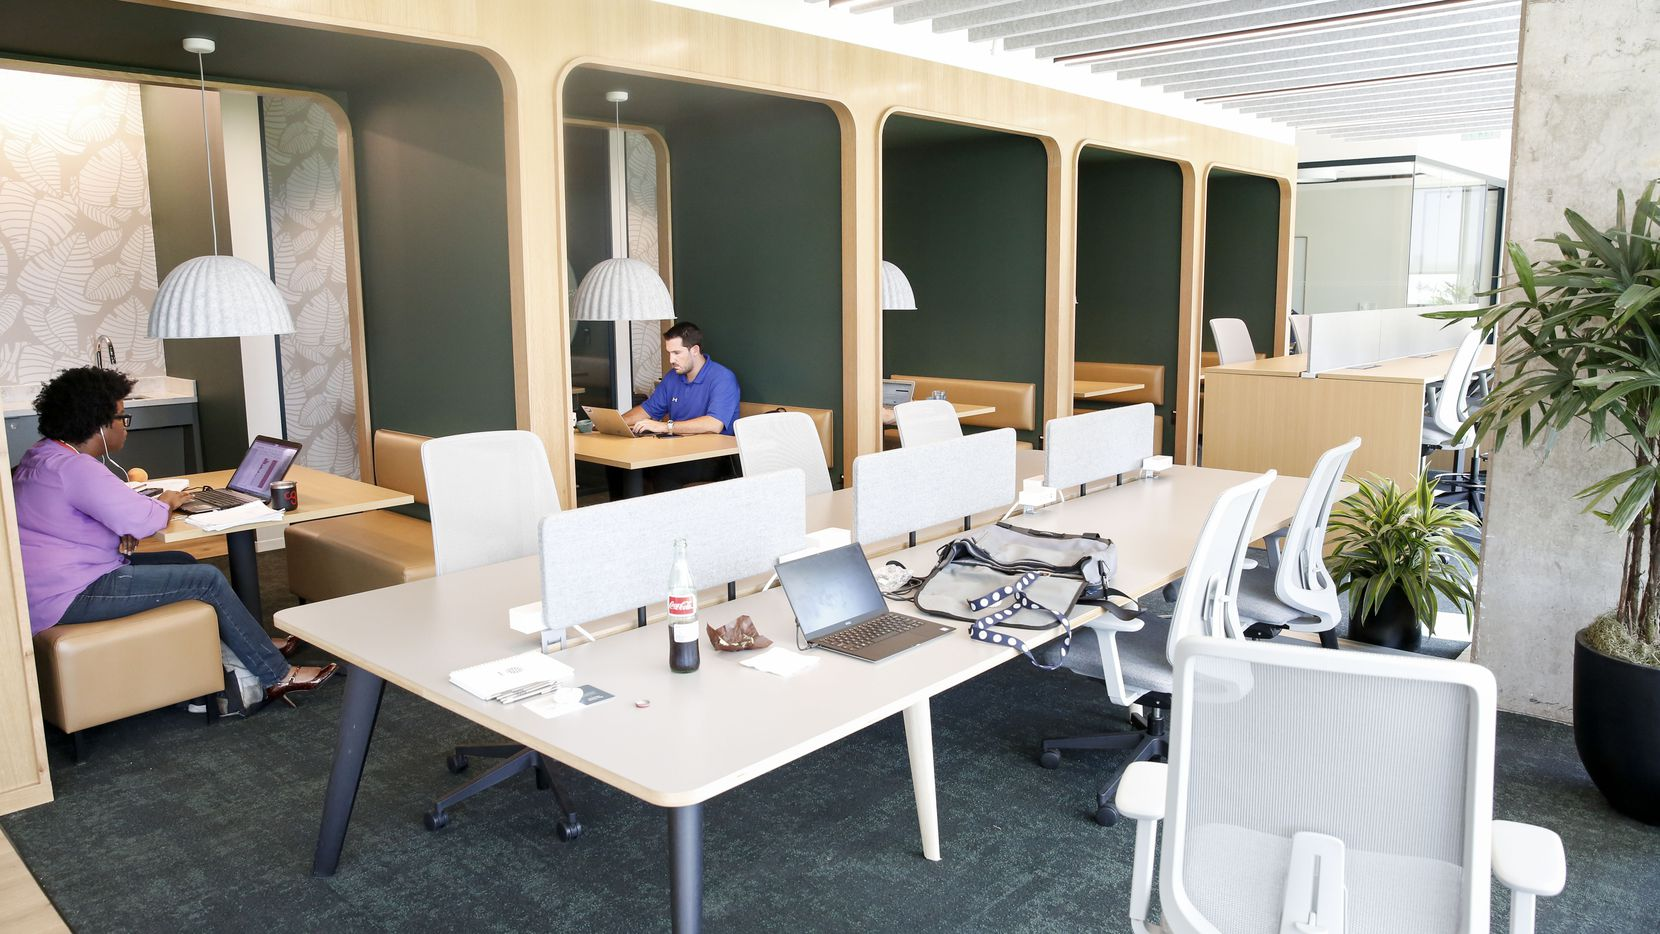 CBRE is joining with other workplace providers to make changes to its year-old Hana coworking operation in Dallas.